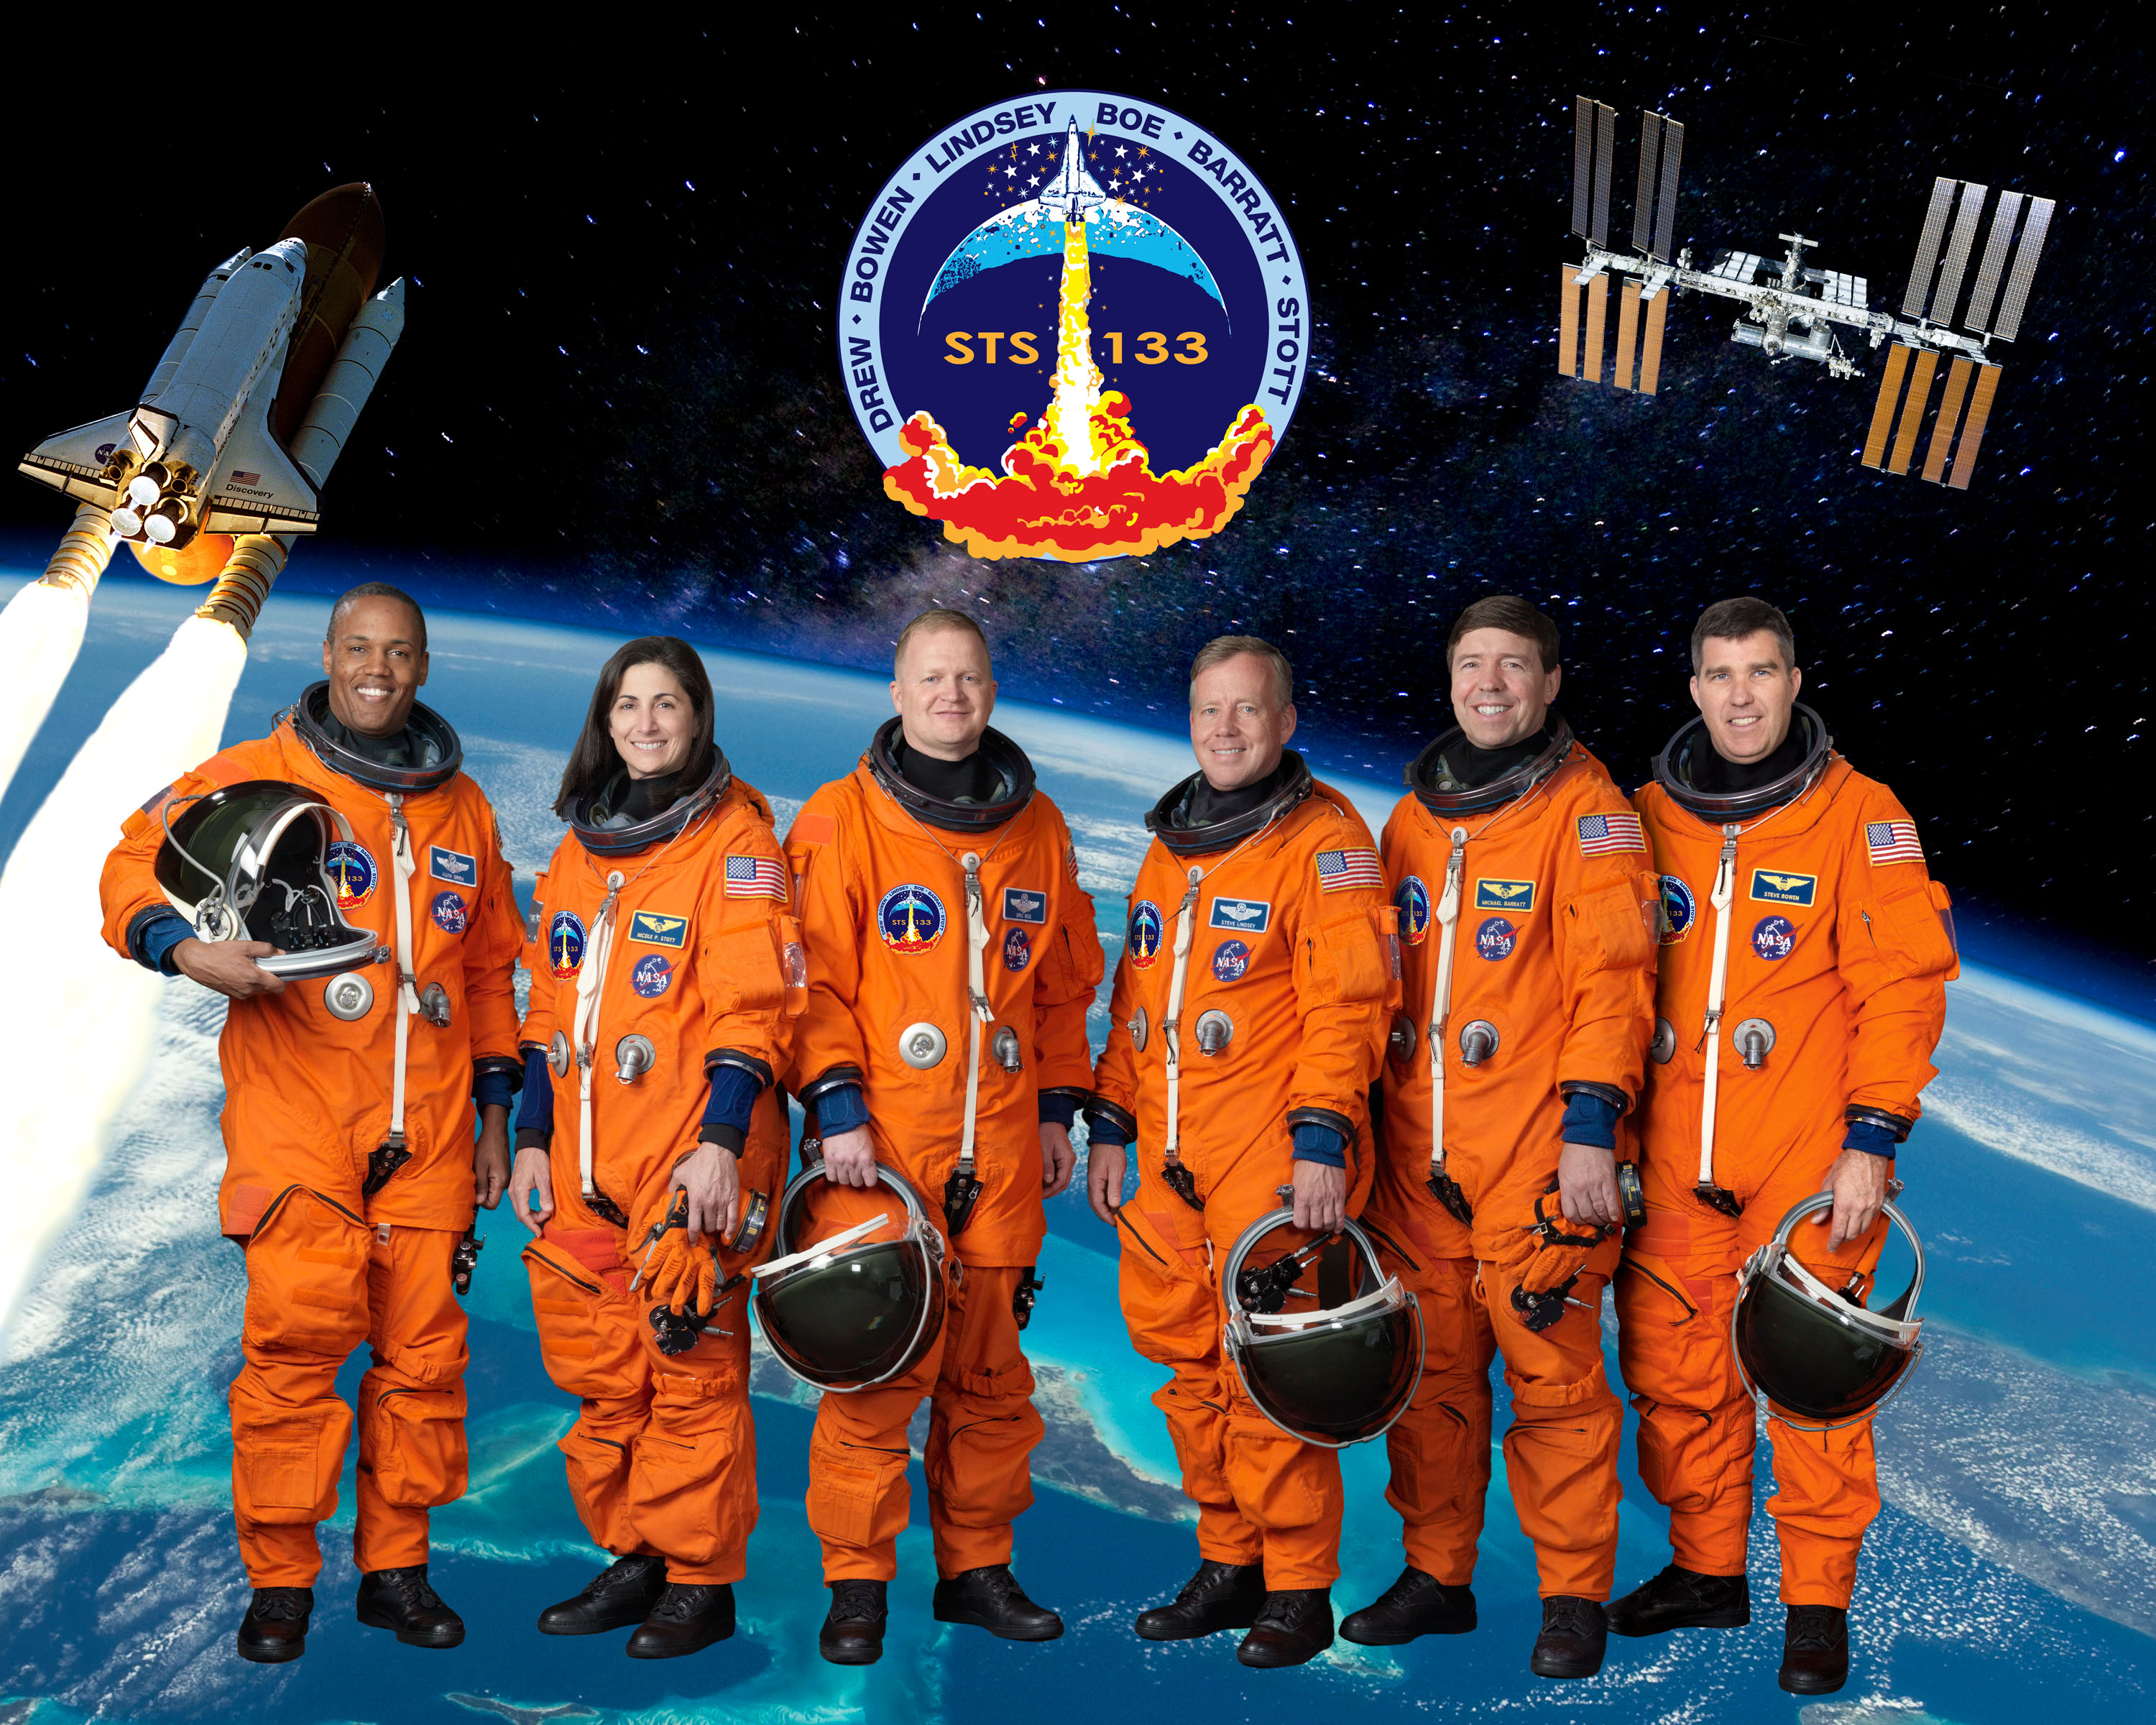 space shuttle discovery crew - photo #8